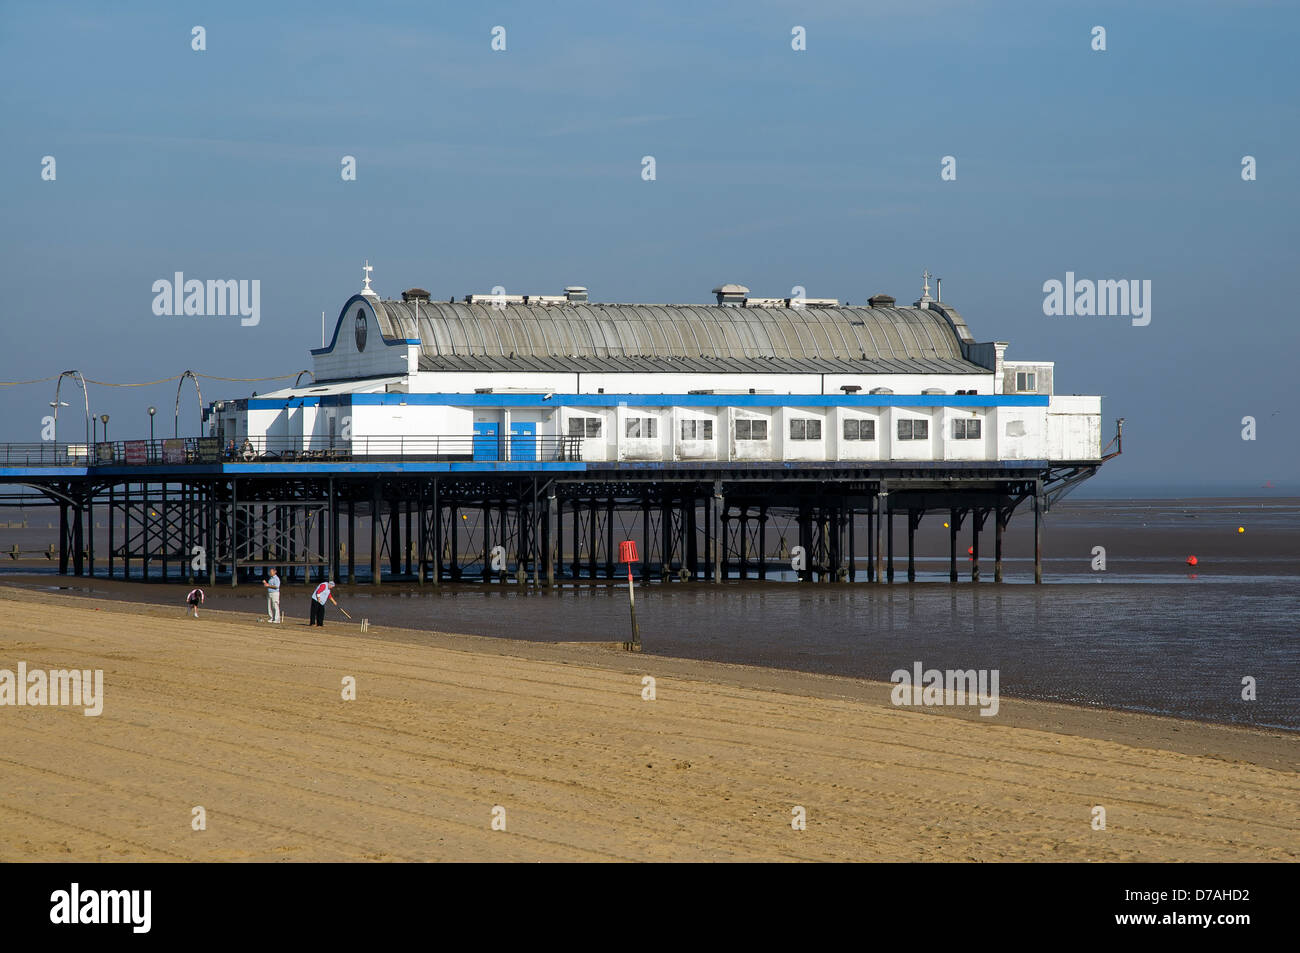 Two adults and a child play cricket on the beach in front of Cleethorpes Pier, North East Lincolnshire, United Kingdom. Stock Photo